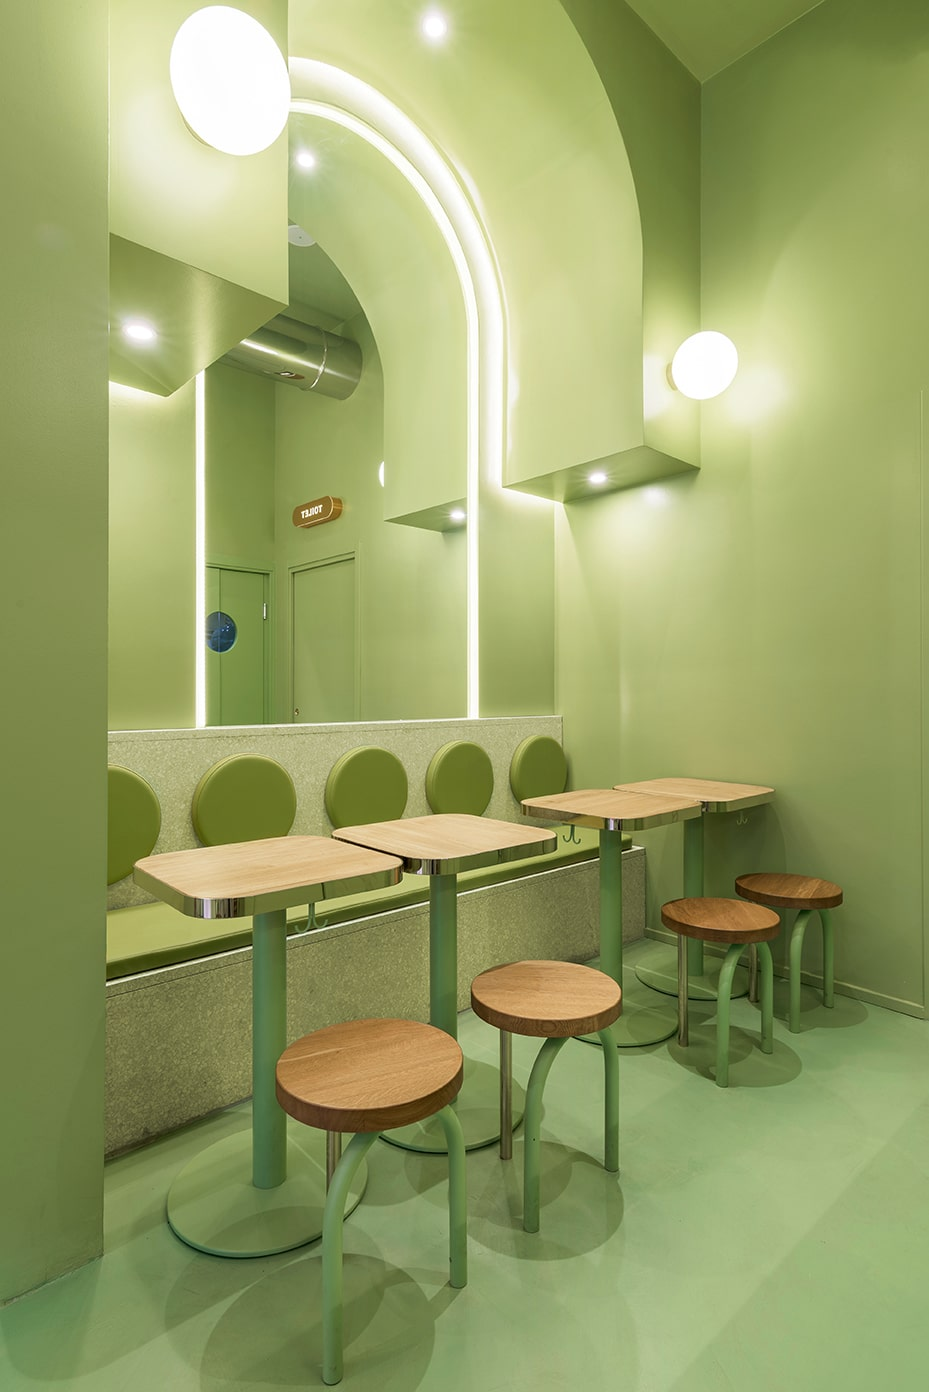 This is a close look at the far green corner of the restaurant with consistent green walls, floor, ceiling and structures complemented by the wooden tables, chairs and the large mirror.